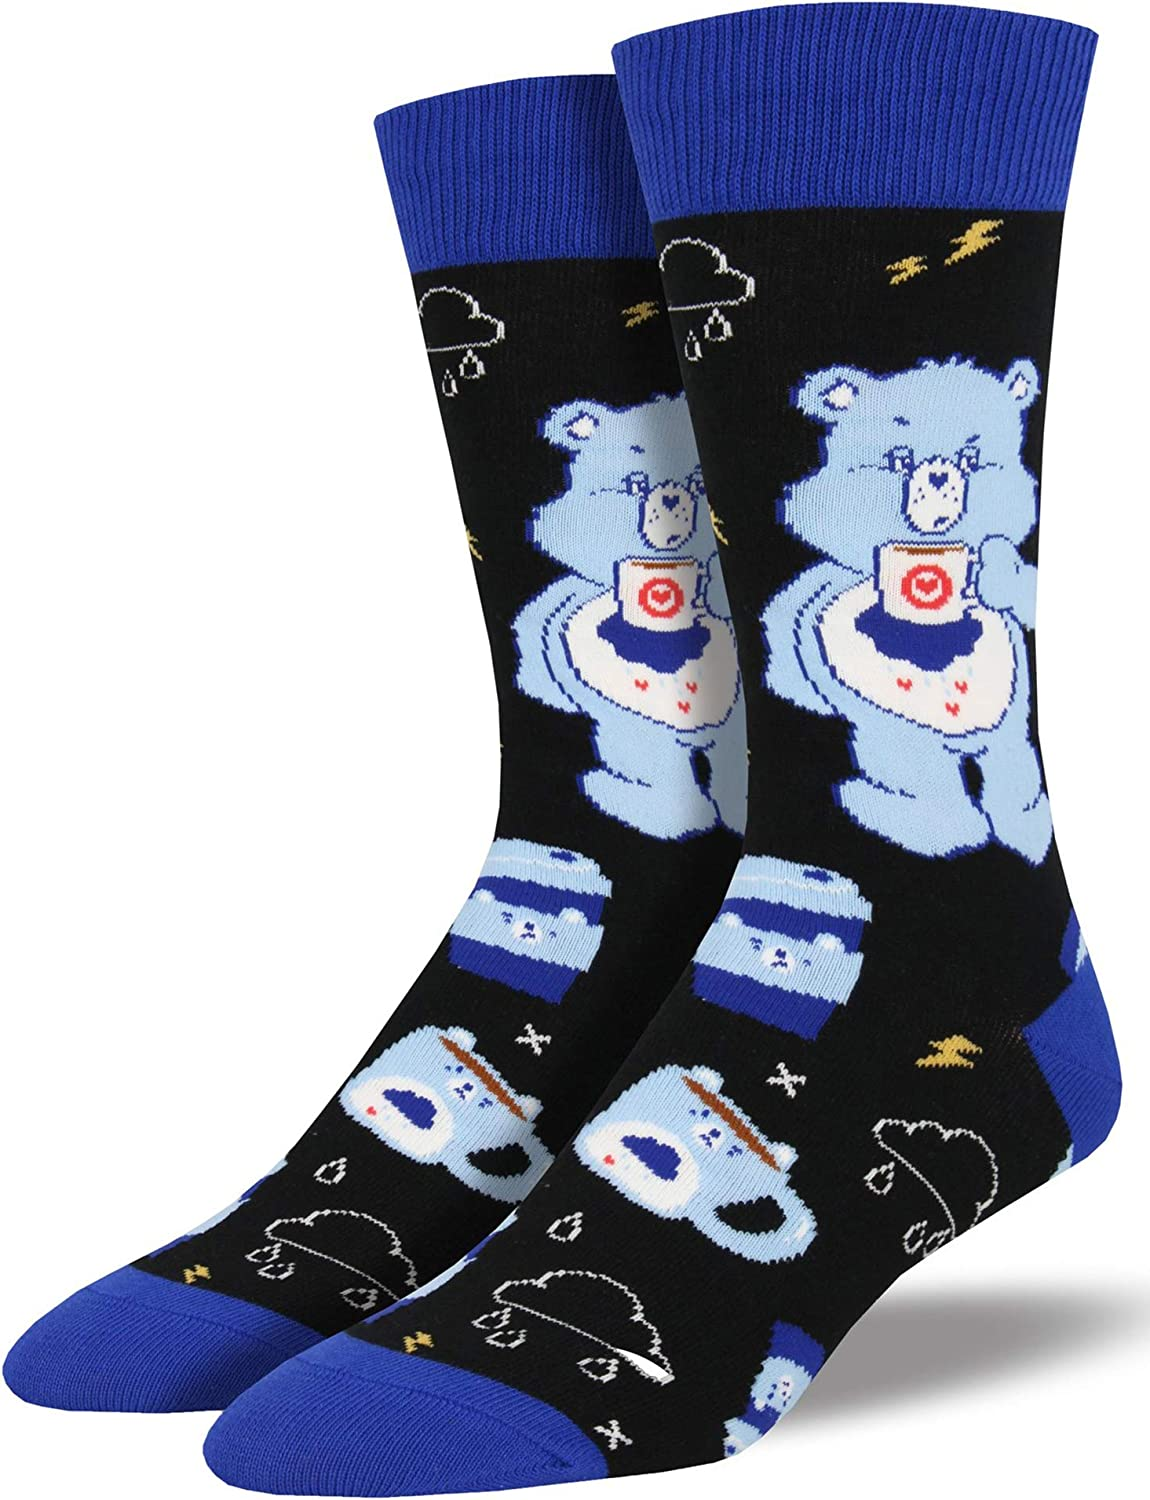 Socksmith Men's More Coffee Less Grumpy Care Bears Novelty Socks, Black: Shoes